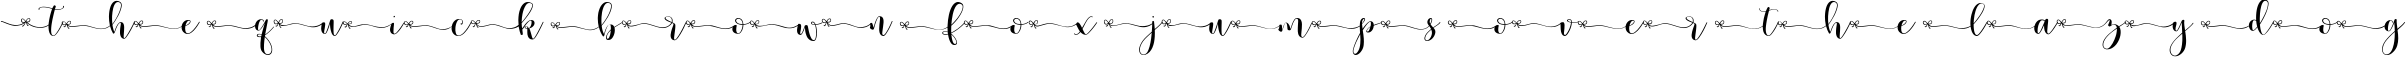 Example 11 of  Font